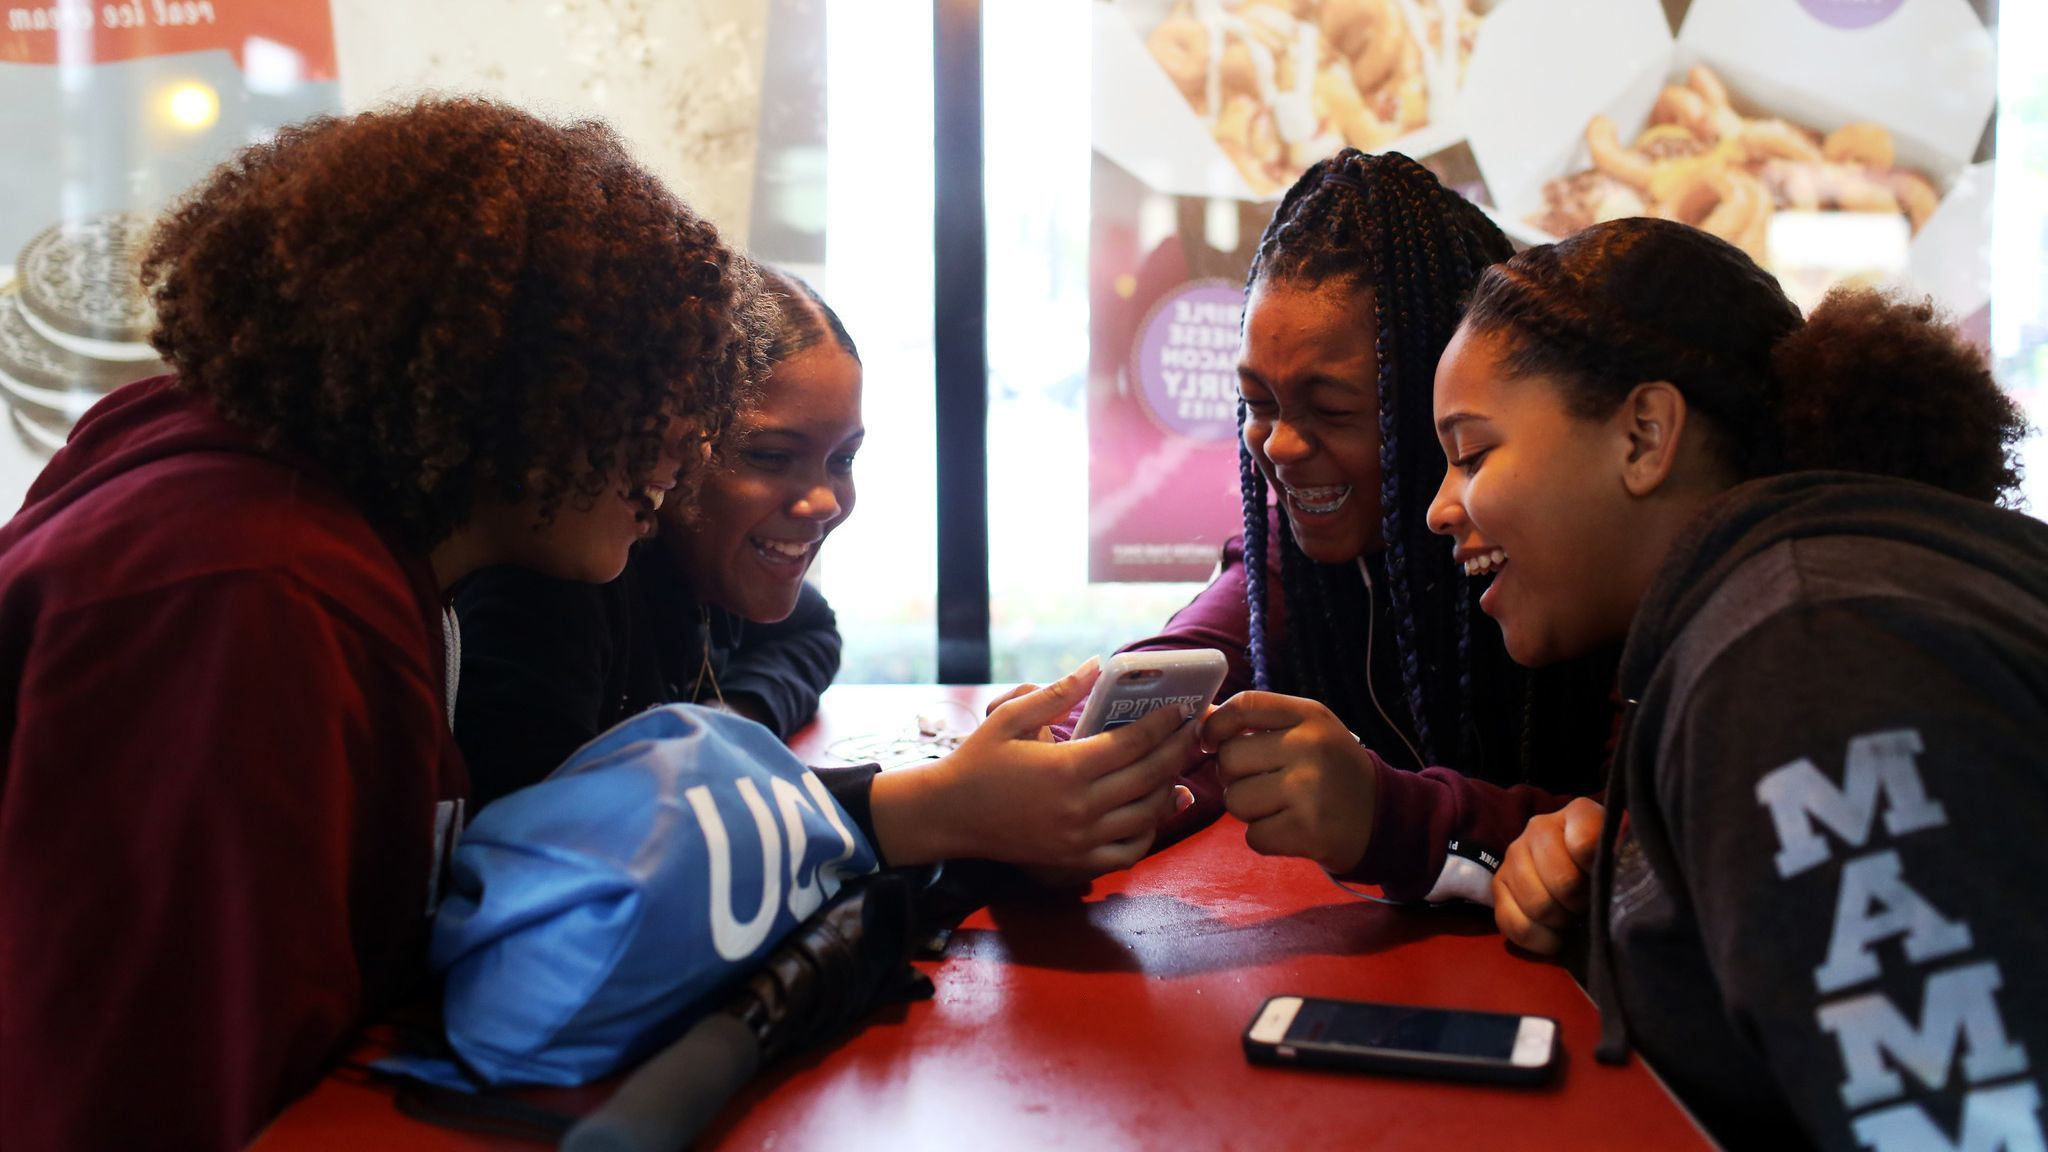 LOS ANGELES, CA-JANUARY 14, 2019: Friends Imani Brown, Savonna McGlothan, Jade Foreman and Aleysha B